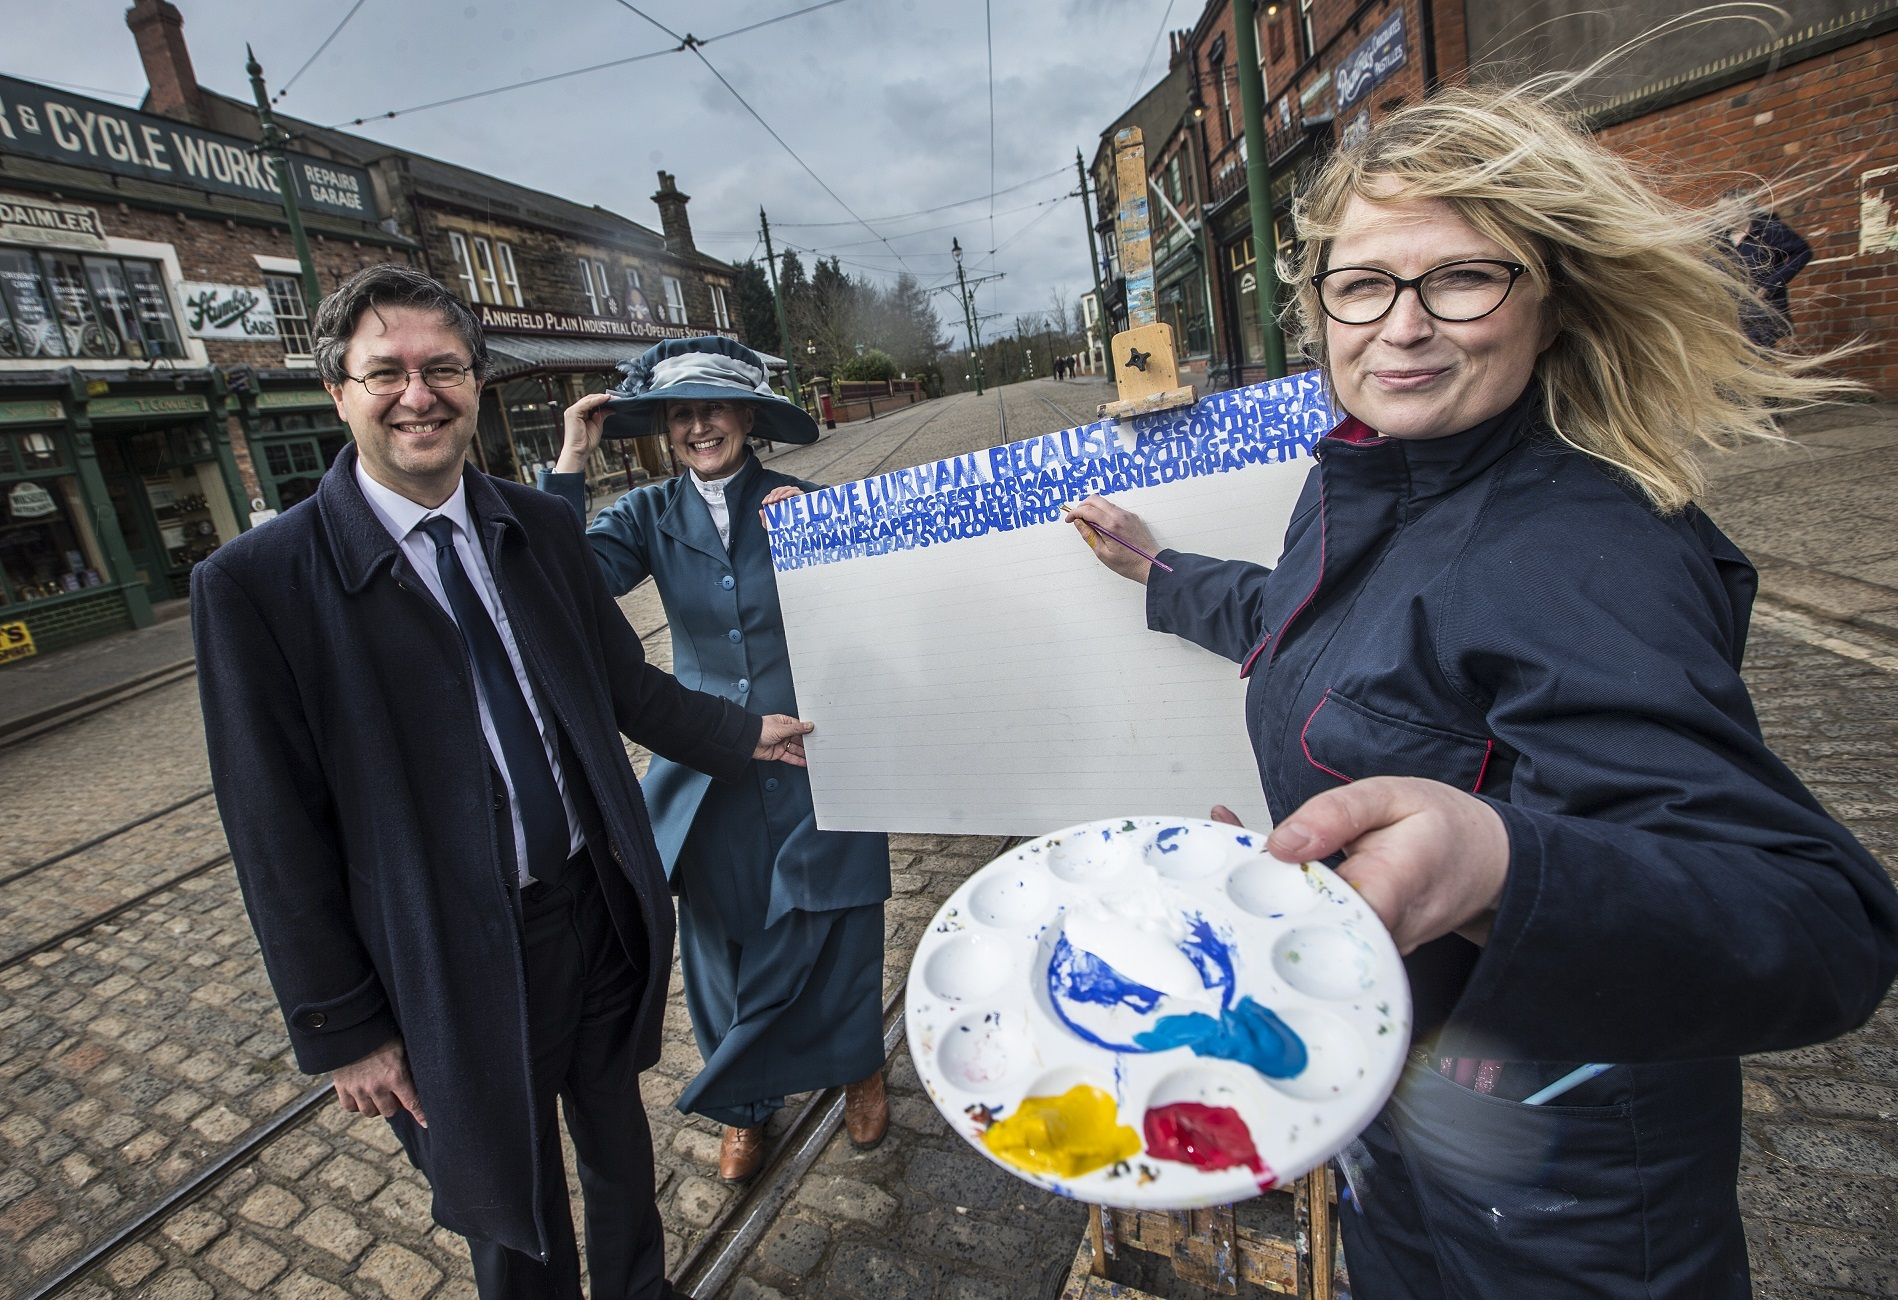 Artist Kara Strachan with Rhiannon Hiles, Deputy Director of Beamish, and Cllr Simon Henig, Leader of Durham County Council.